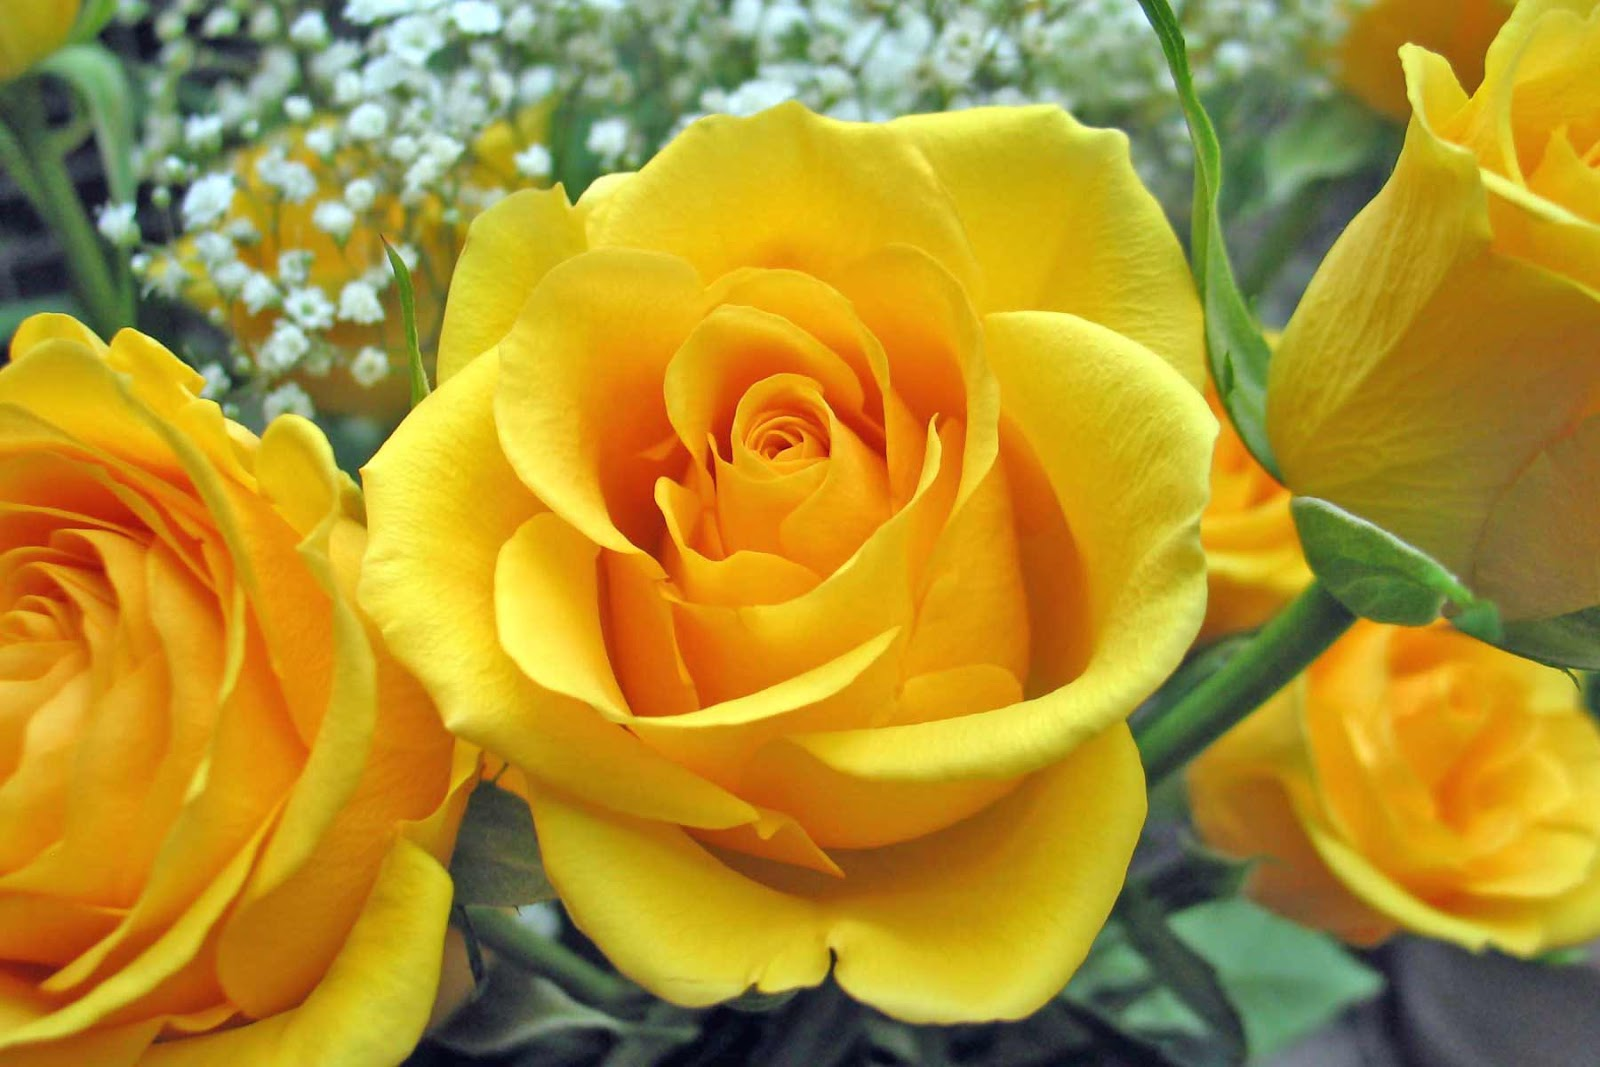 Yellow Rose Flowers - Flower HD Wallpapers, Images ...